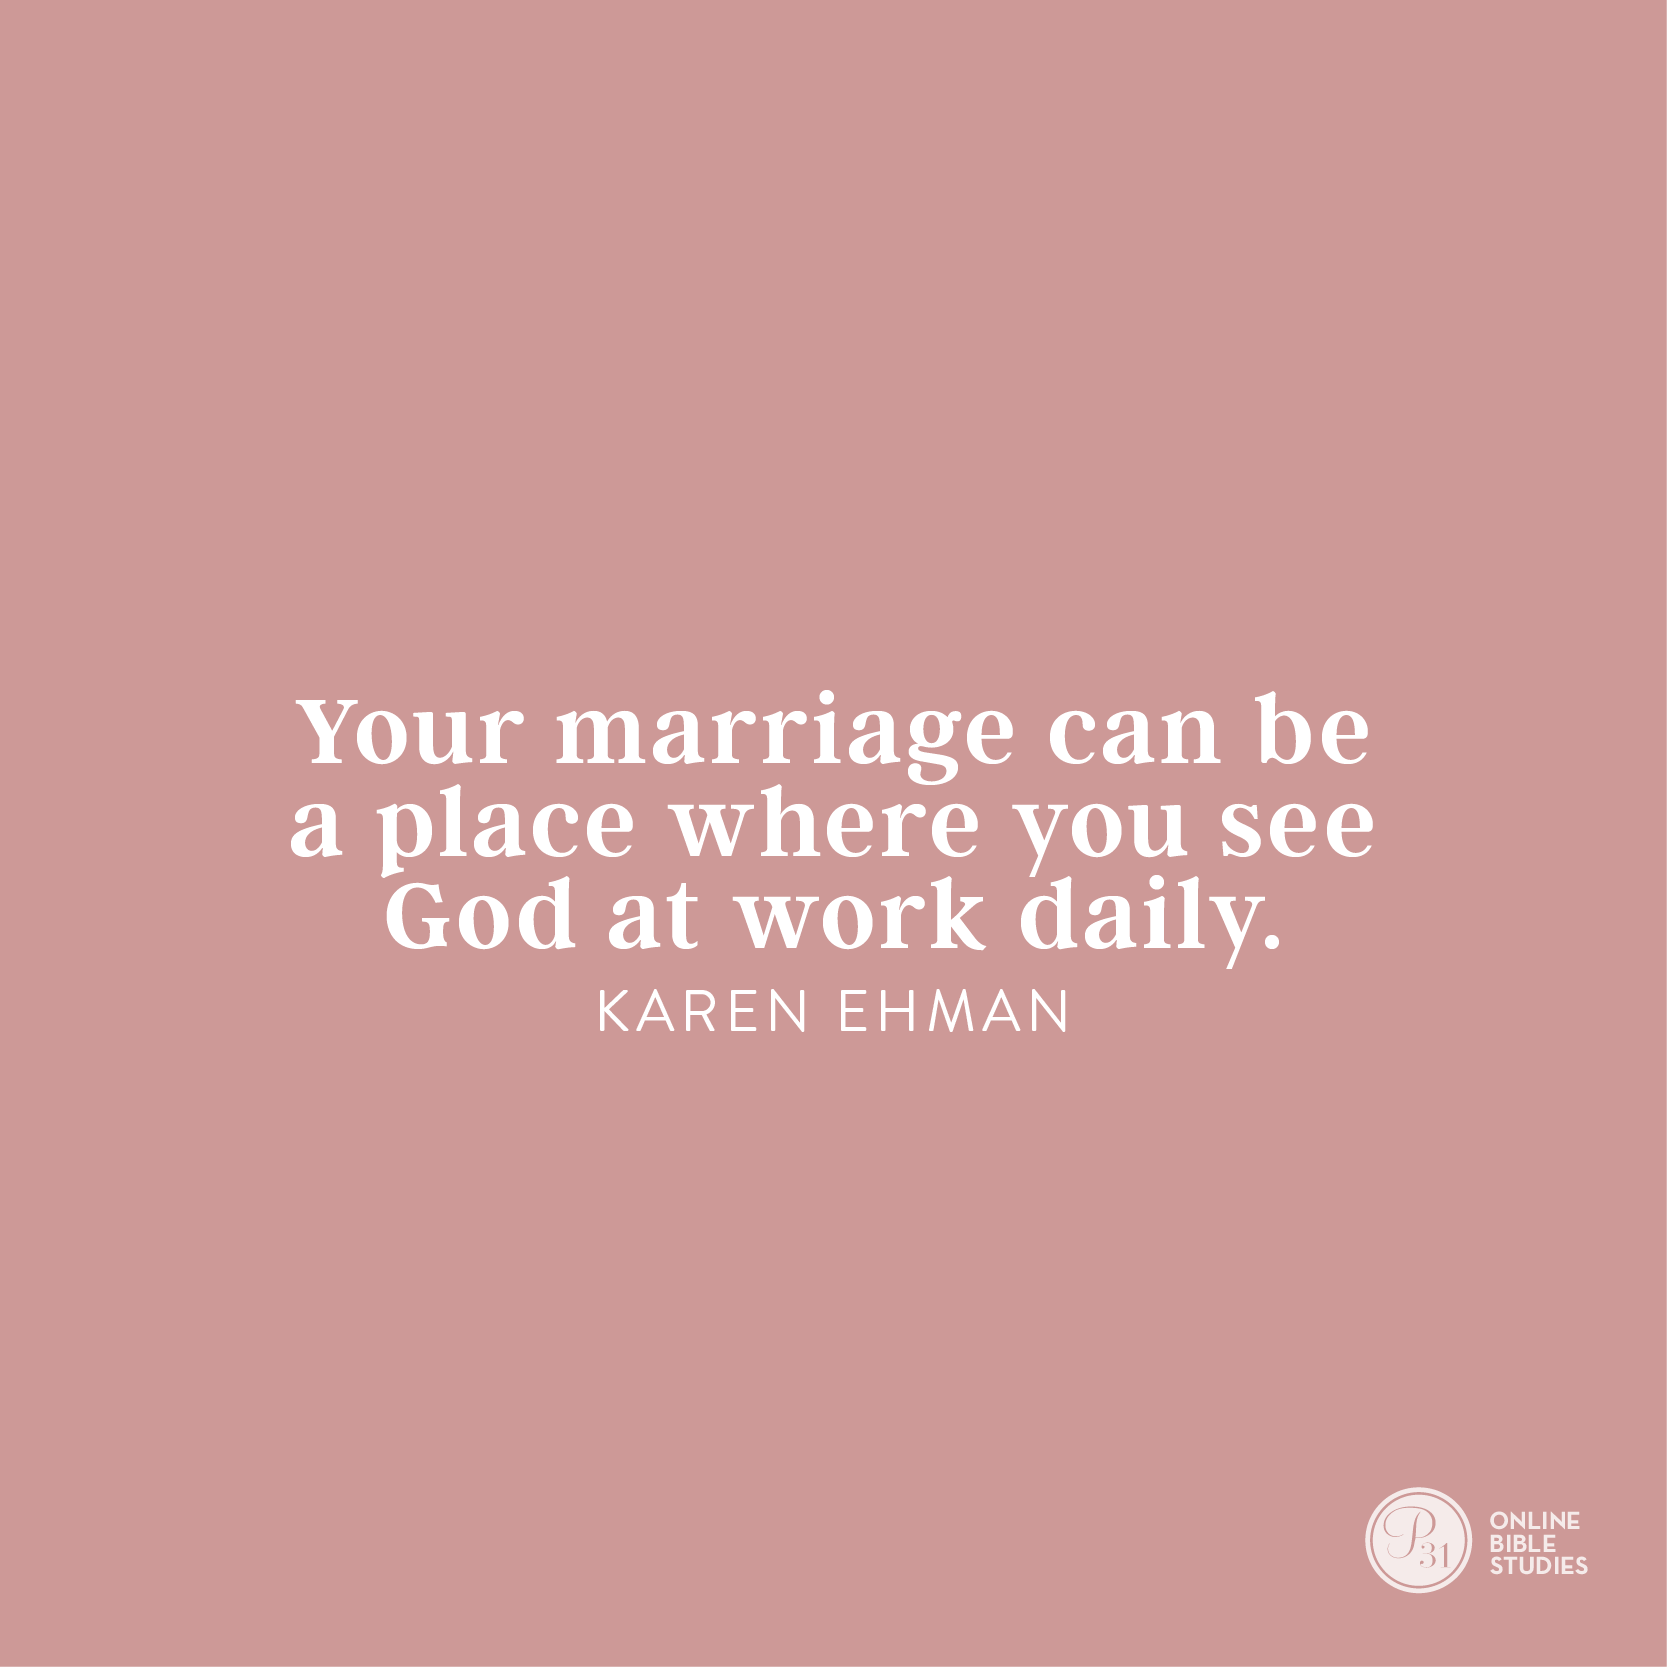 """""""Your marriage can be a place where you see God at work daily."""" - Karen Ehman  #KeepShowingUpBook 